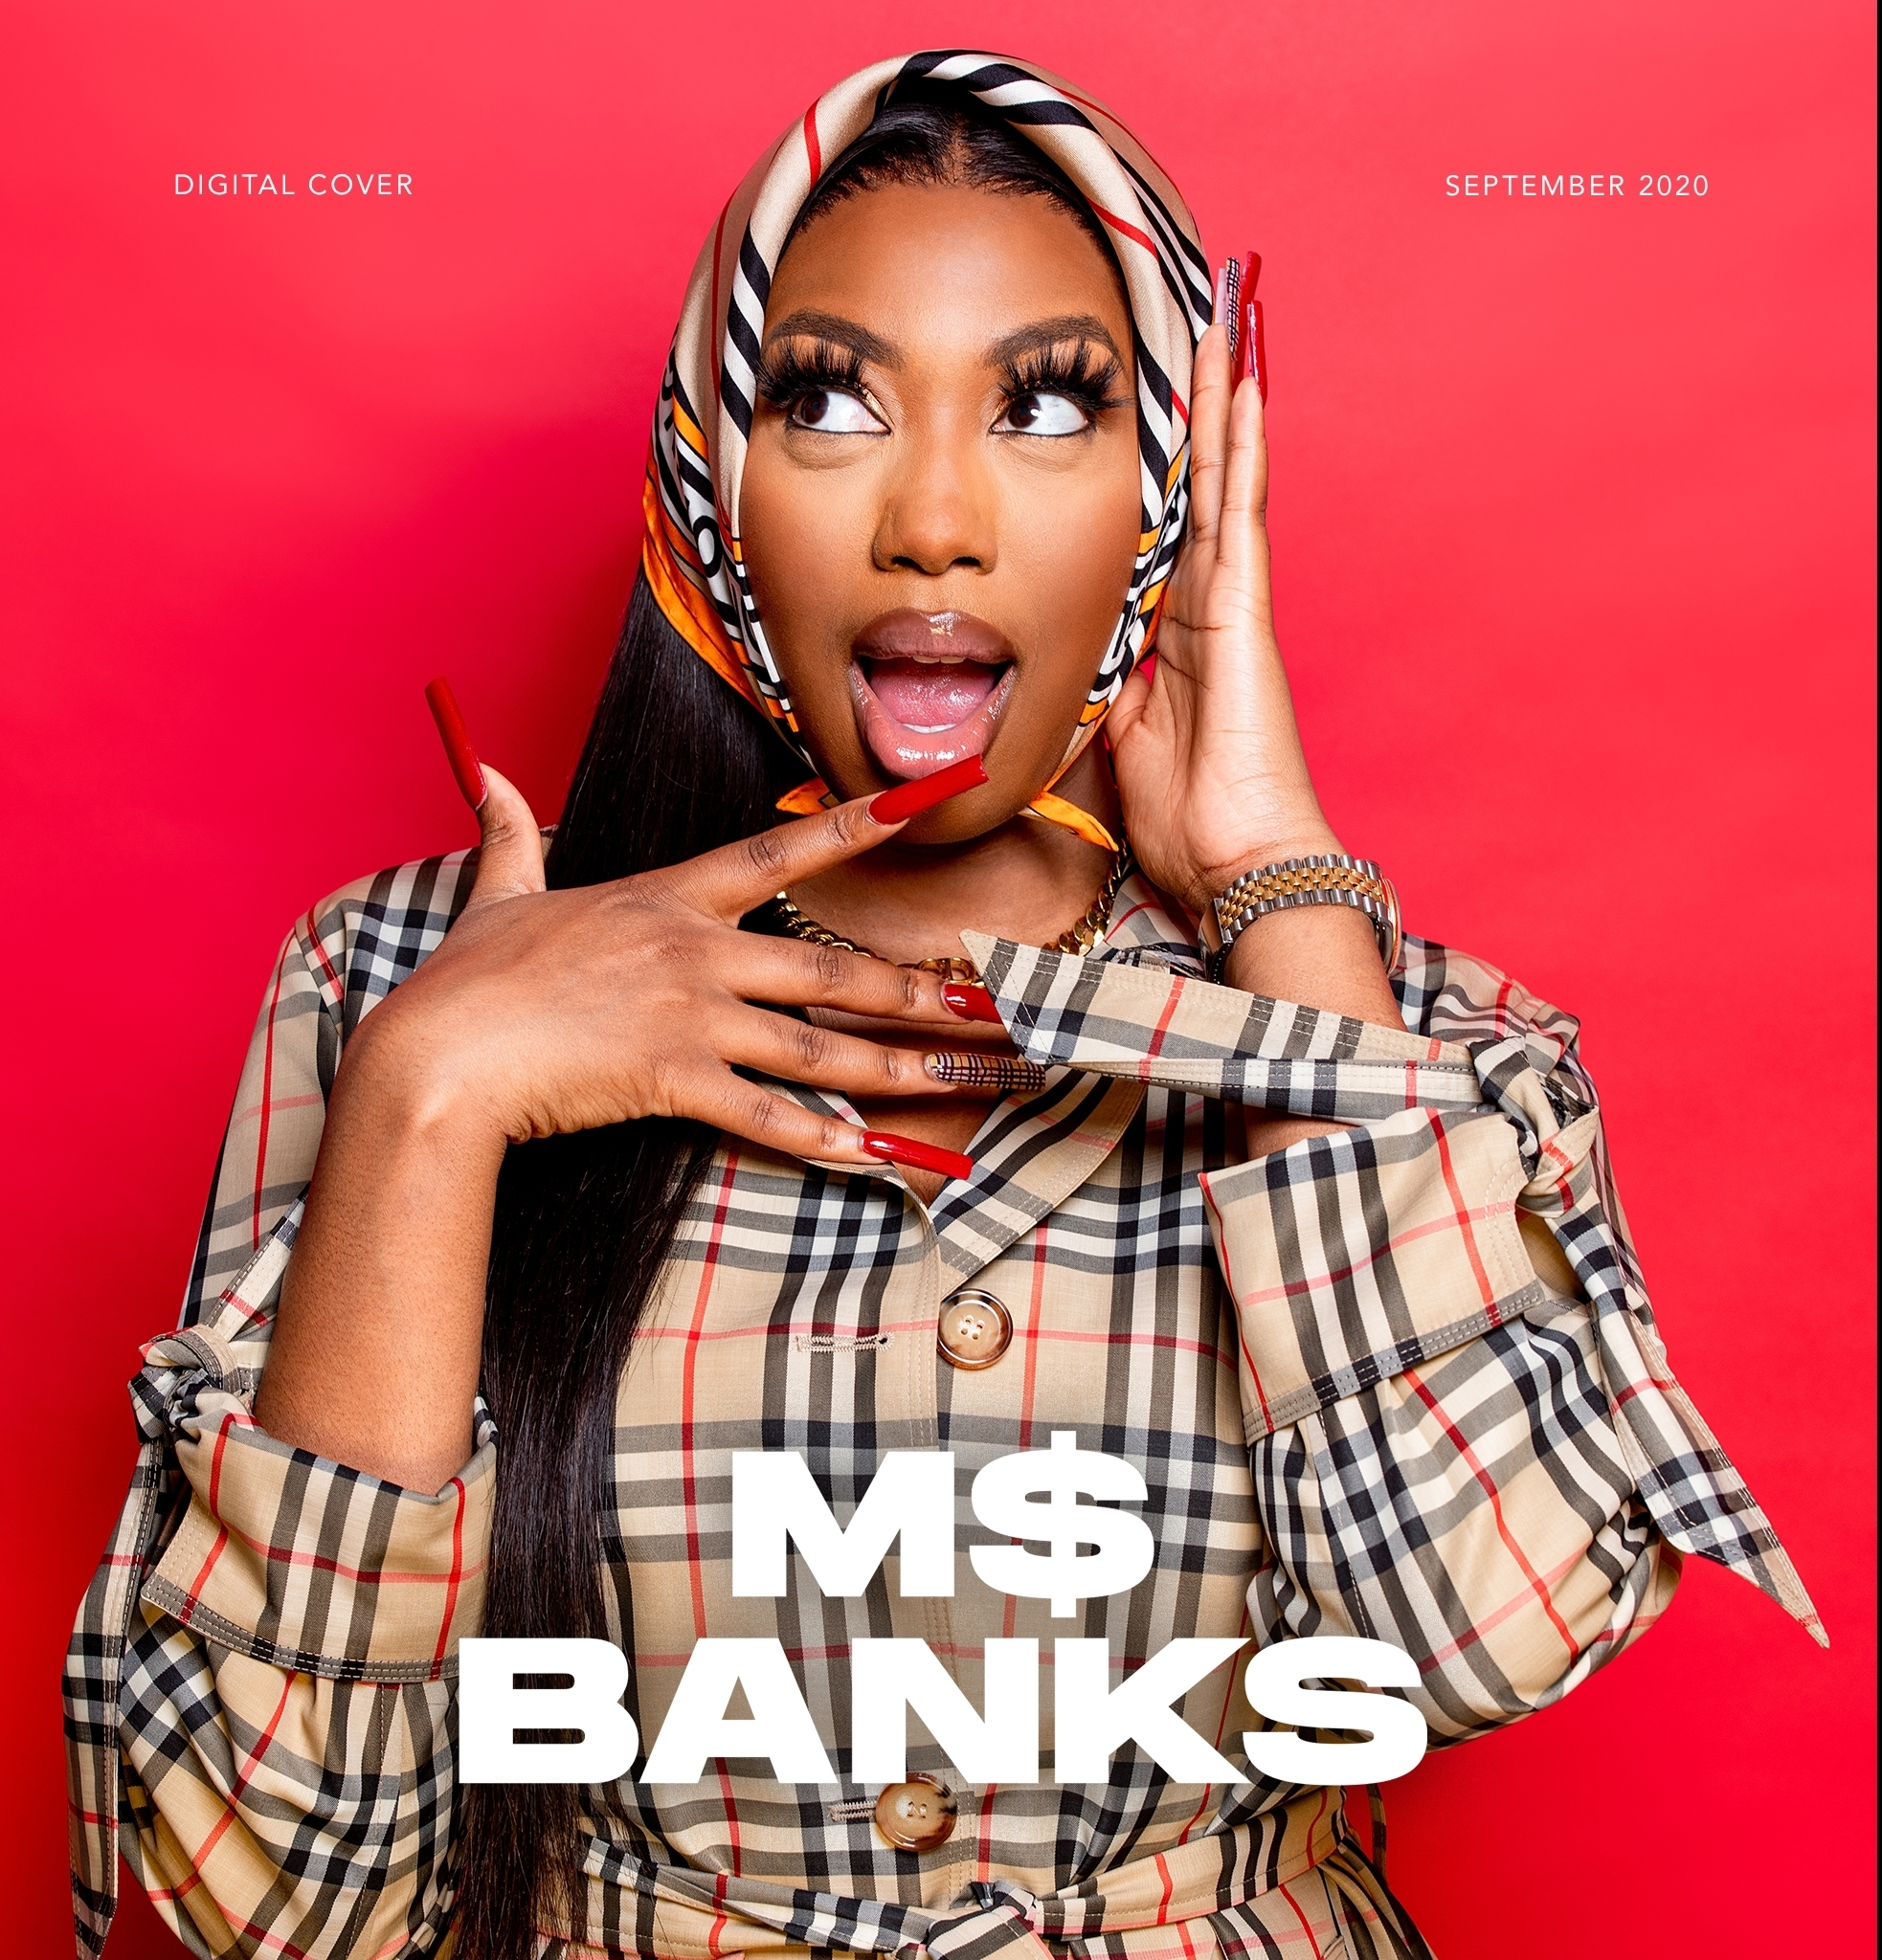 Ms Banks interview 2020